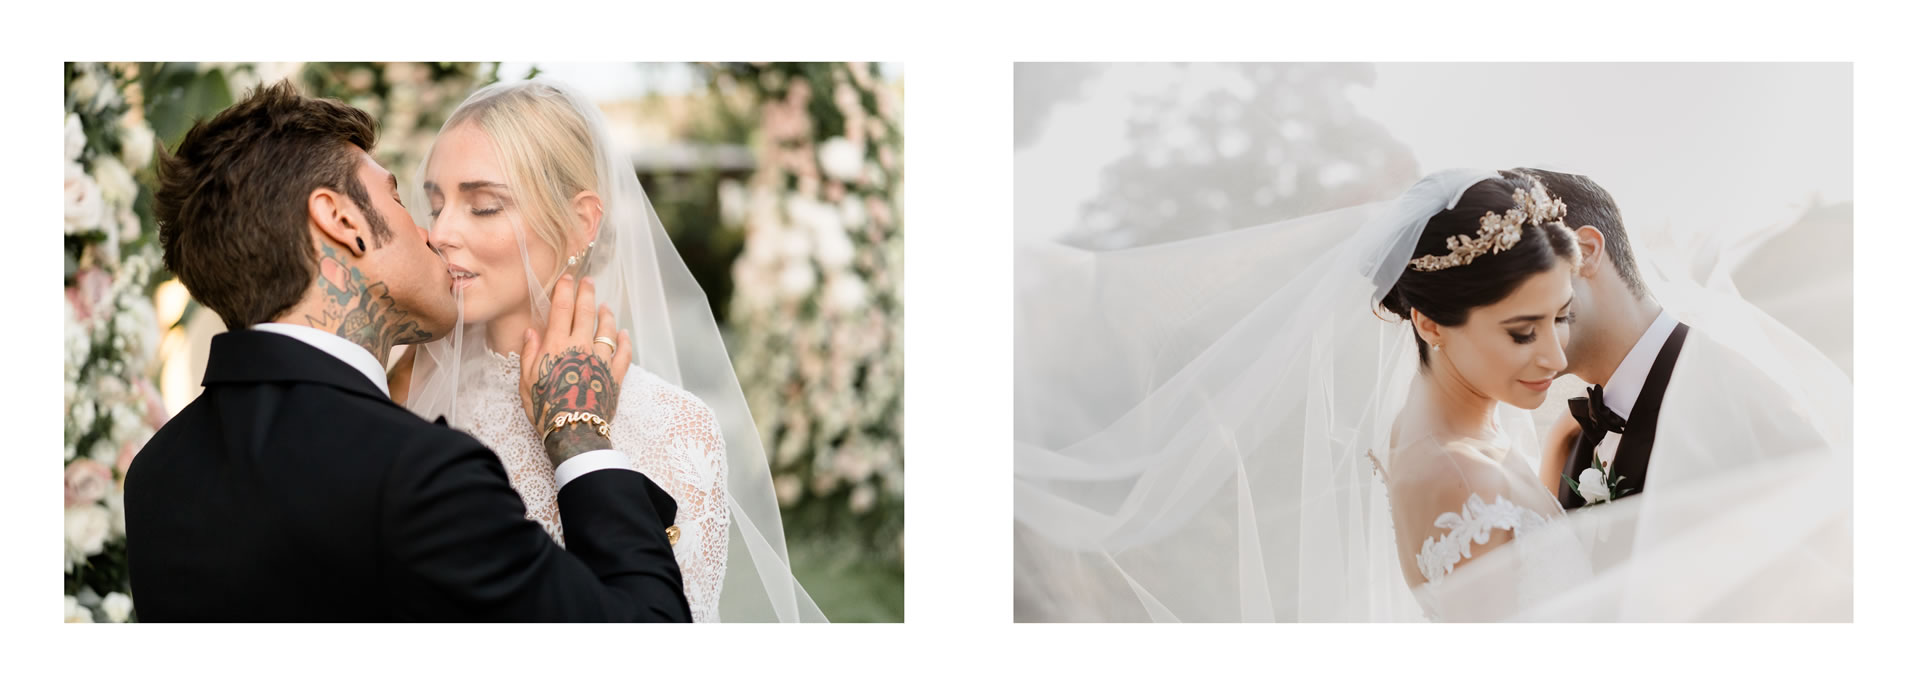 - 39 :: BEST OF 2018 WEDDING: A COLLECTION TO TELL ONE YEAR STORY :: Luxury wedding photography - 38 ::  - 39